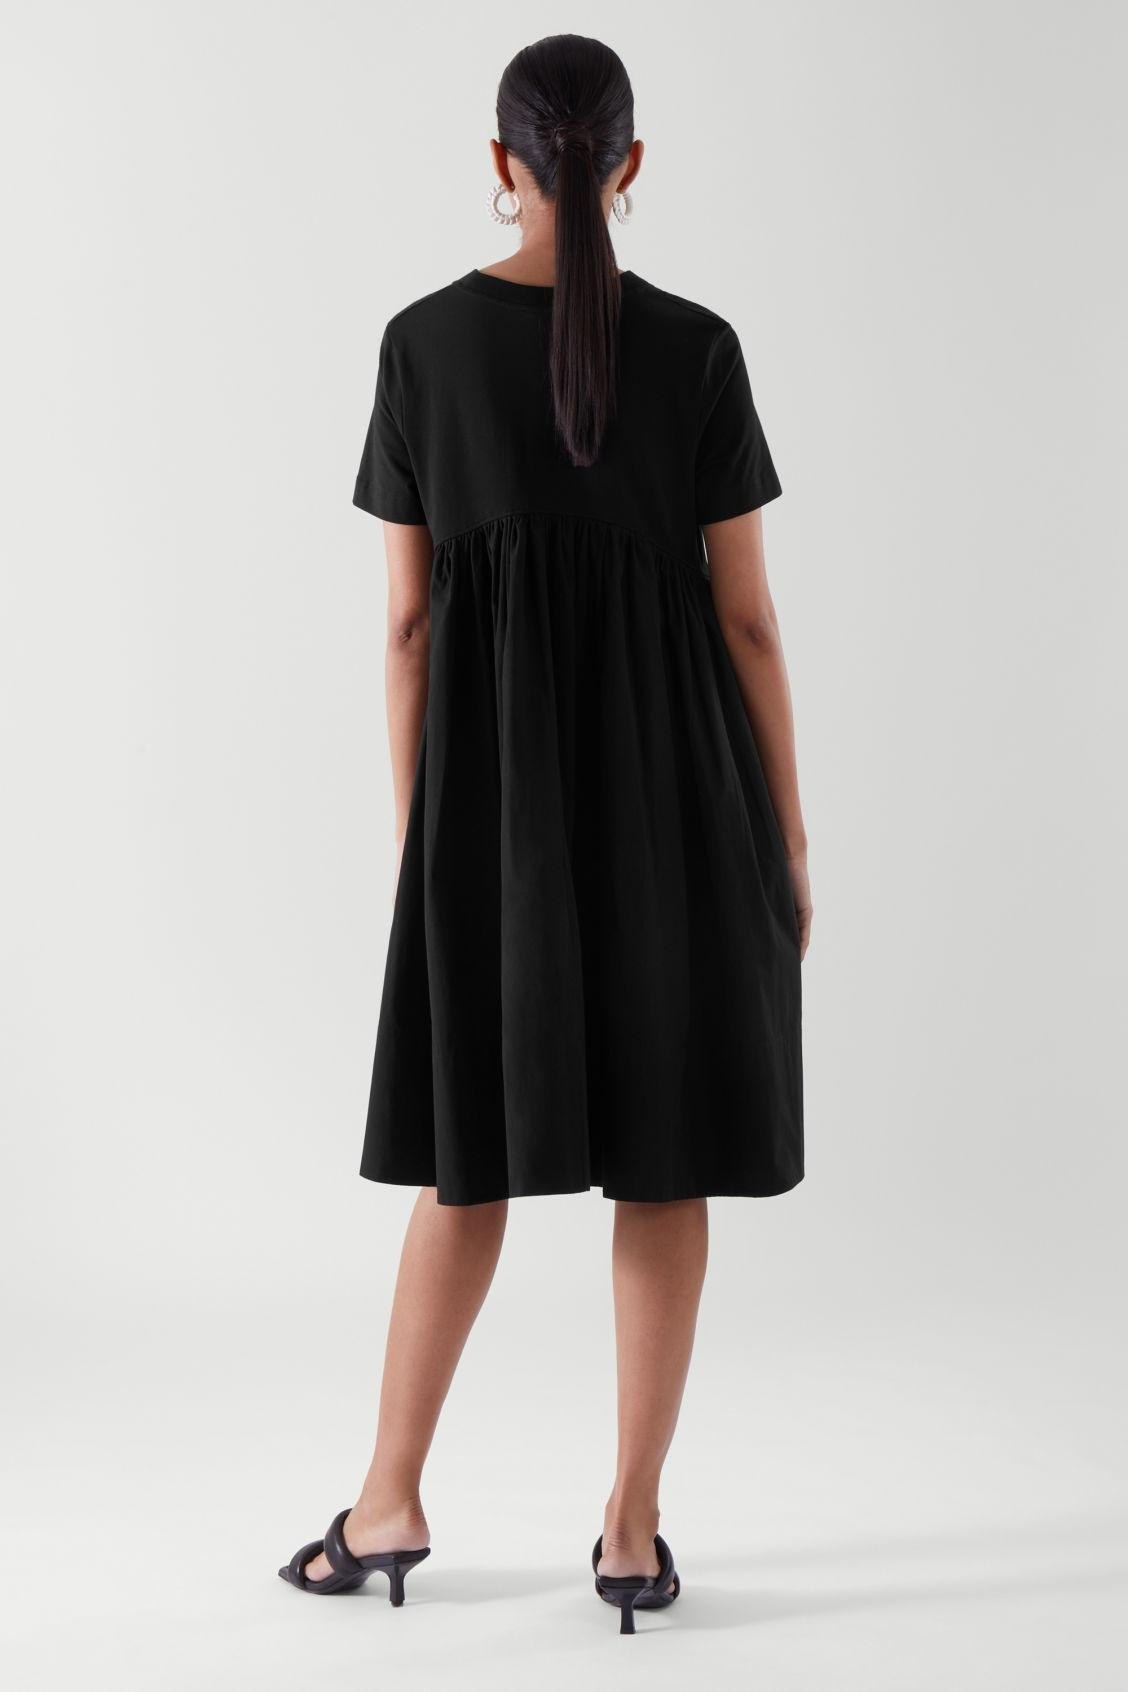 RELAXED-FIT T-SHIRT DRESS 3